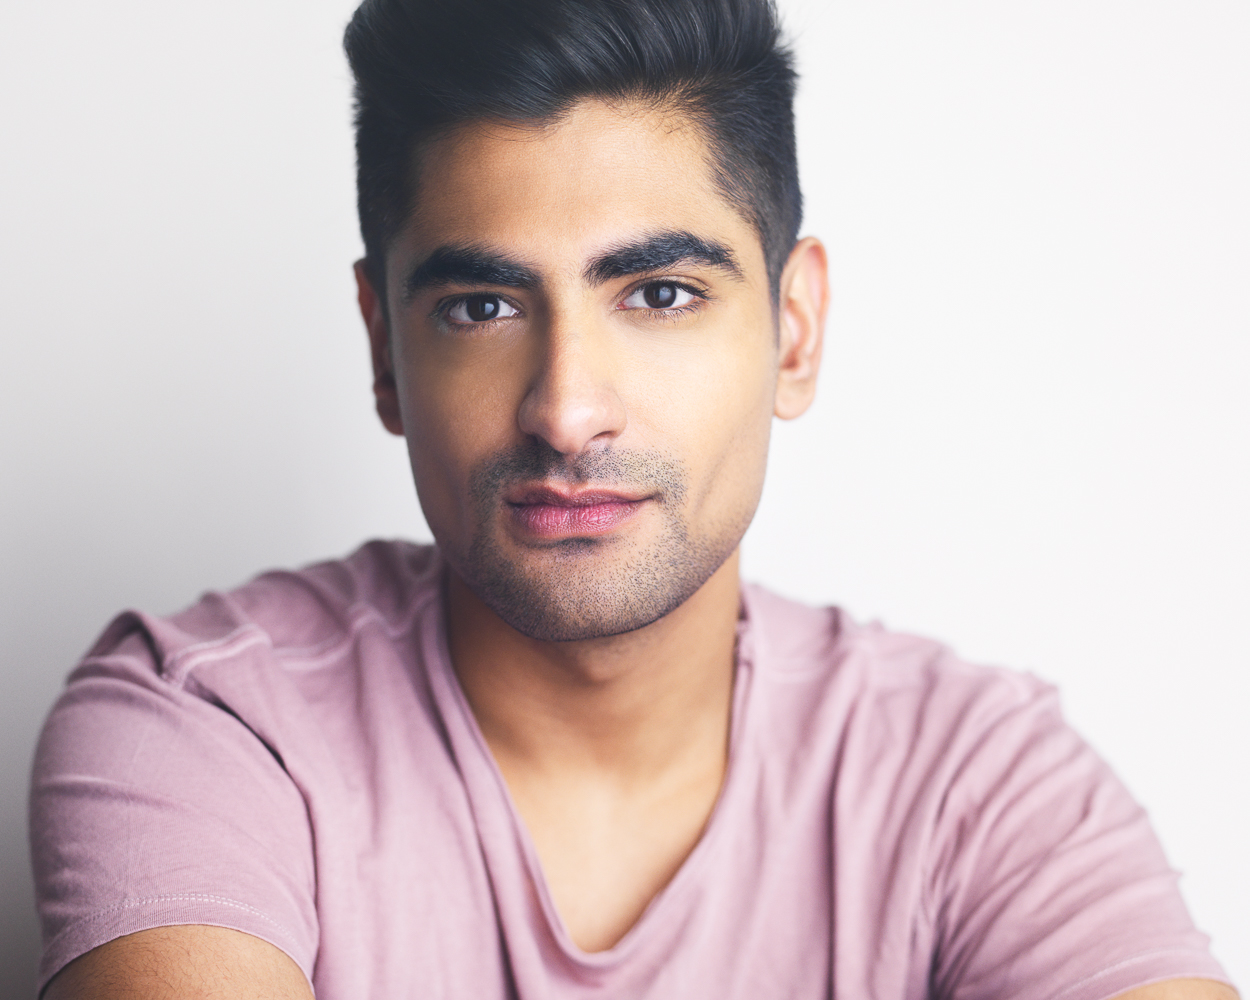 VARDAAN ARORA - Excited to welcome Vardaan Arora to the Midnight Artists family!